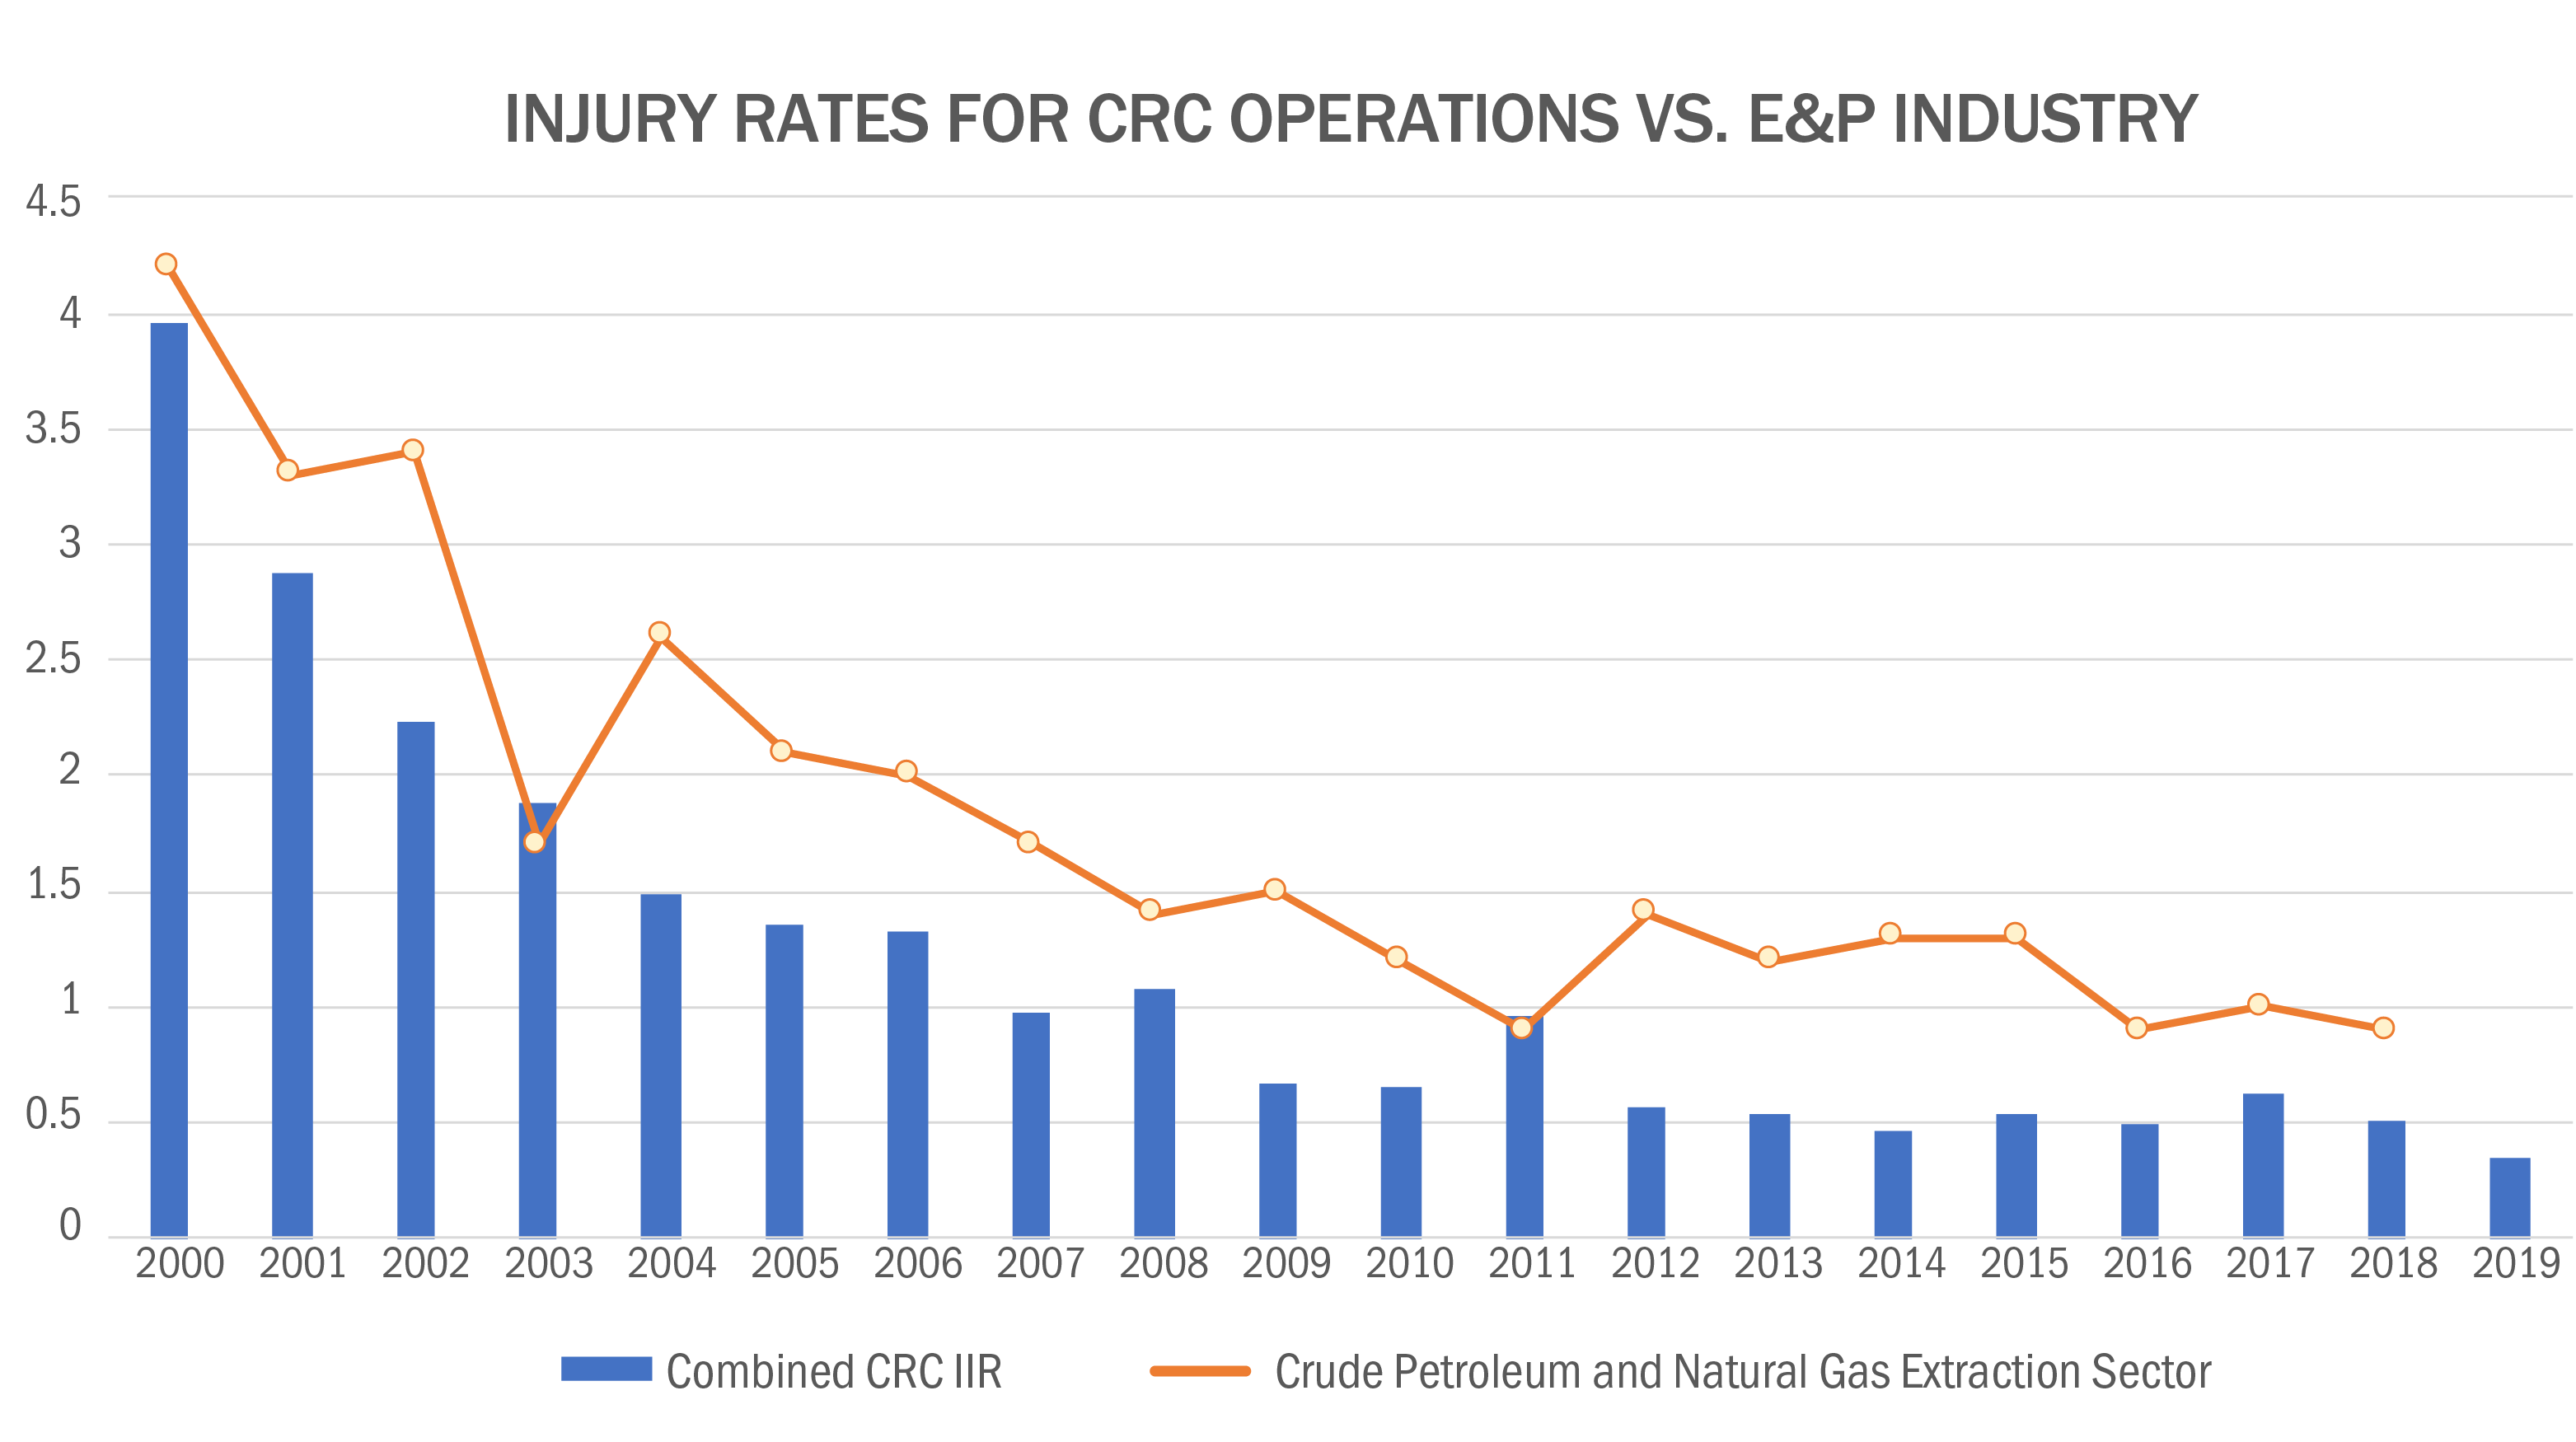 Injury Rates for CRC Operations Vs. E&P Industry Image